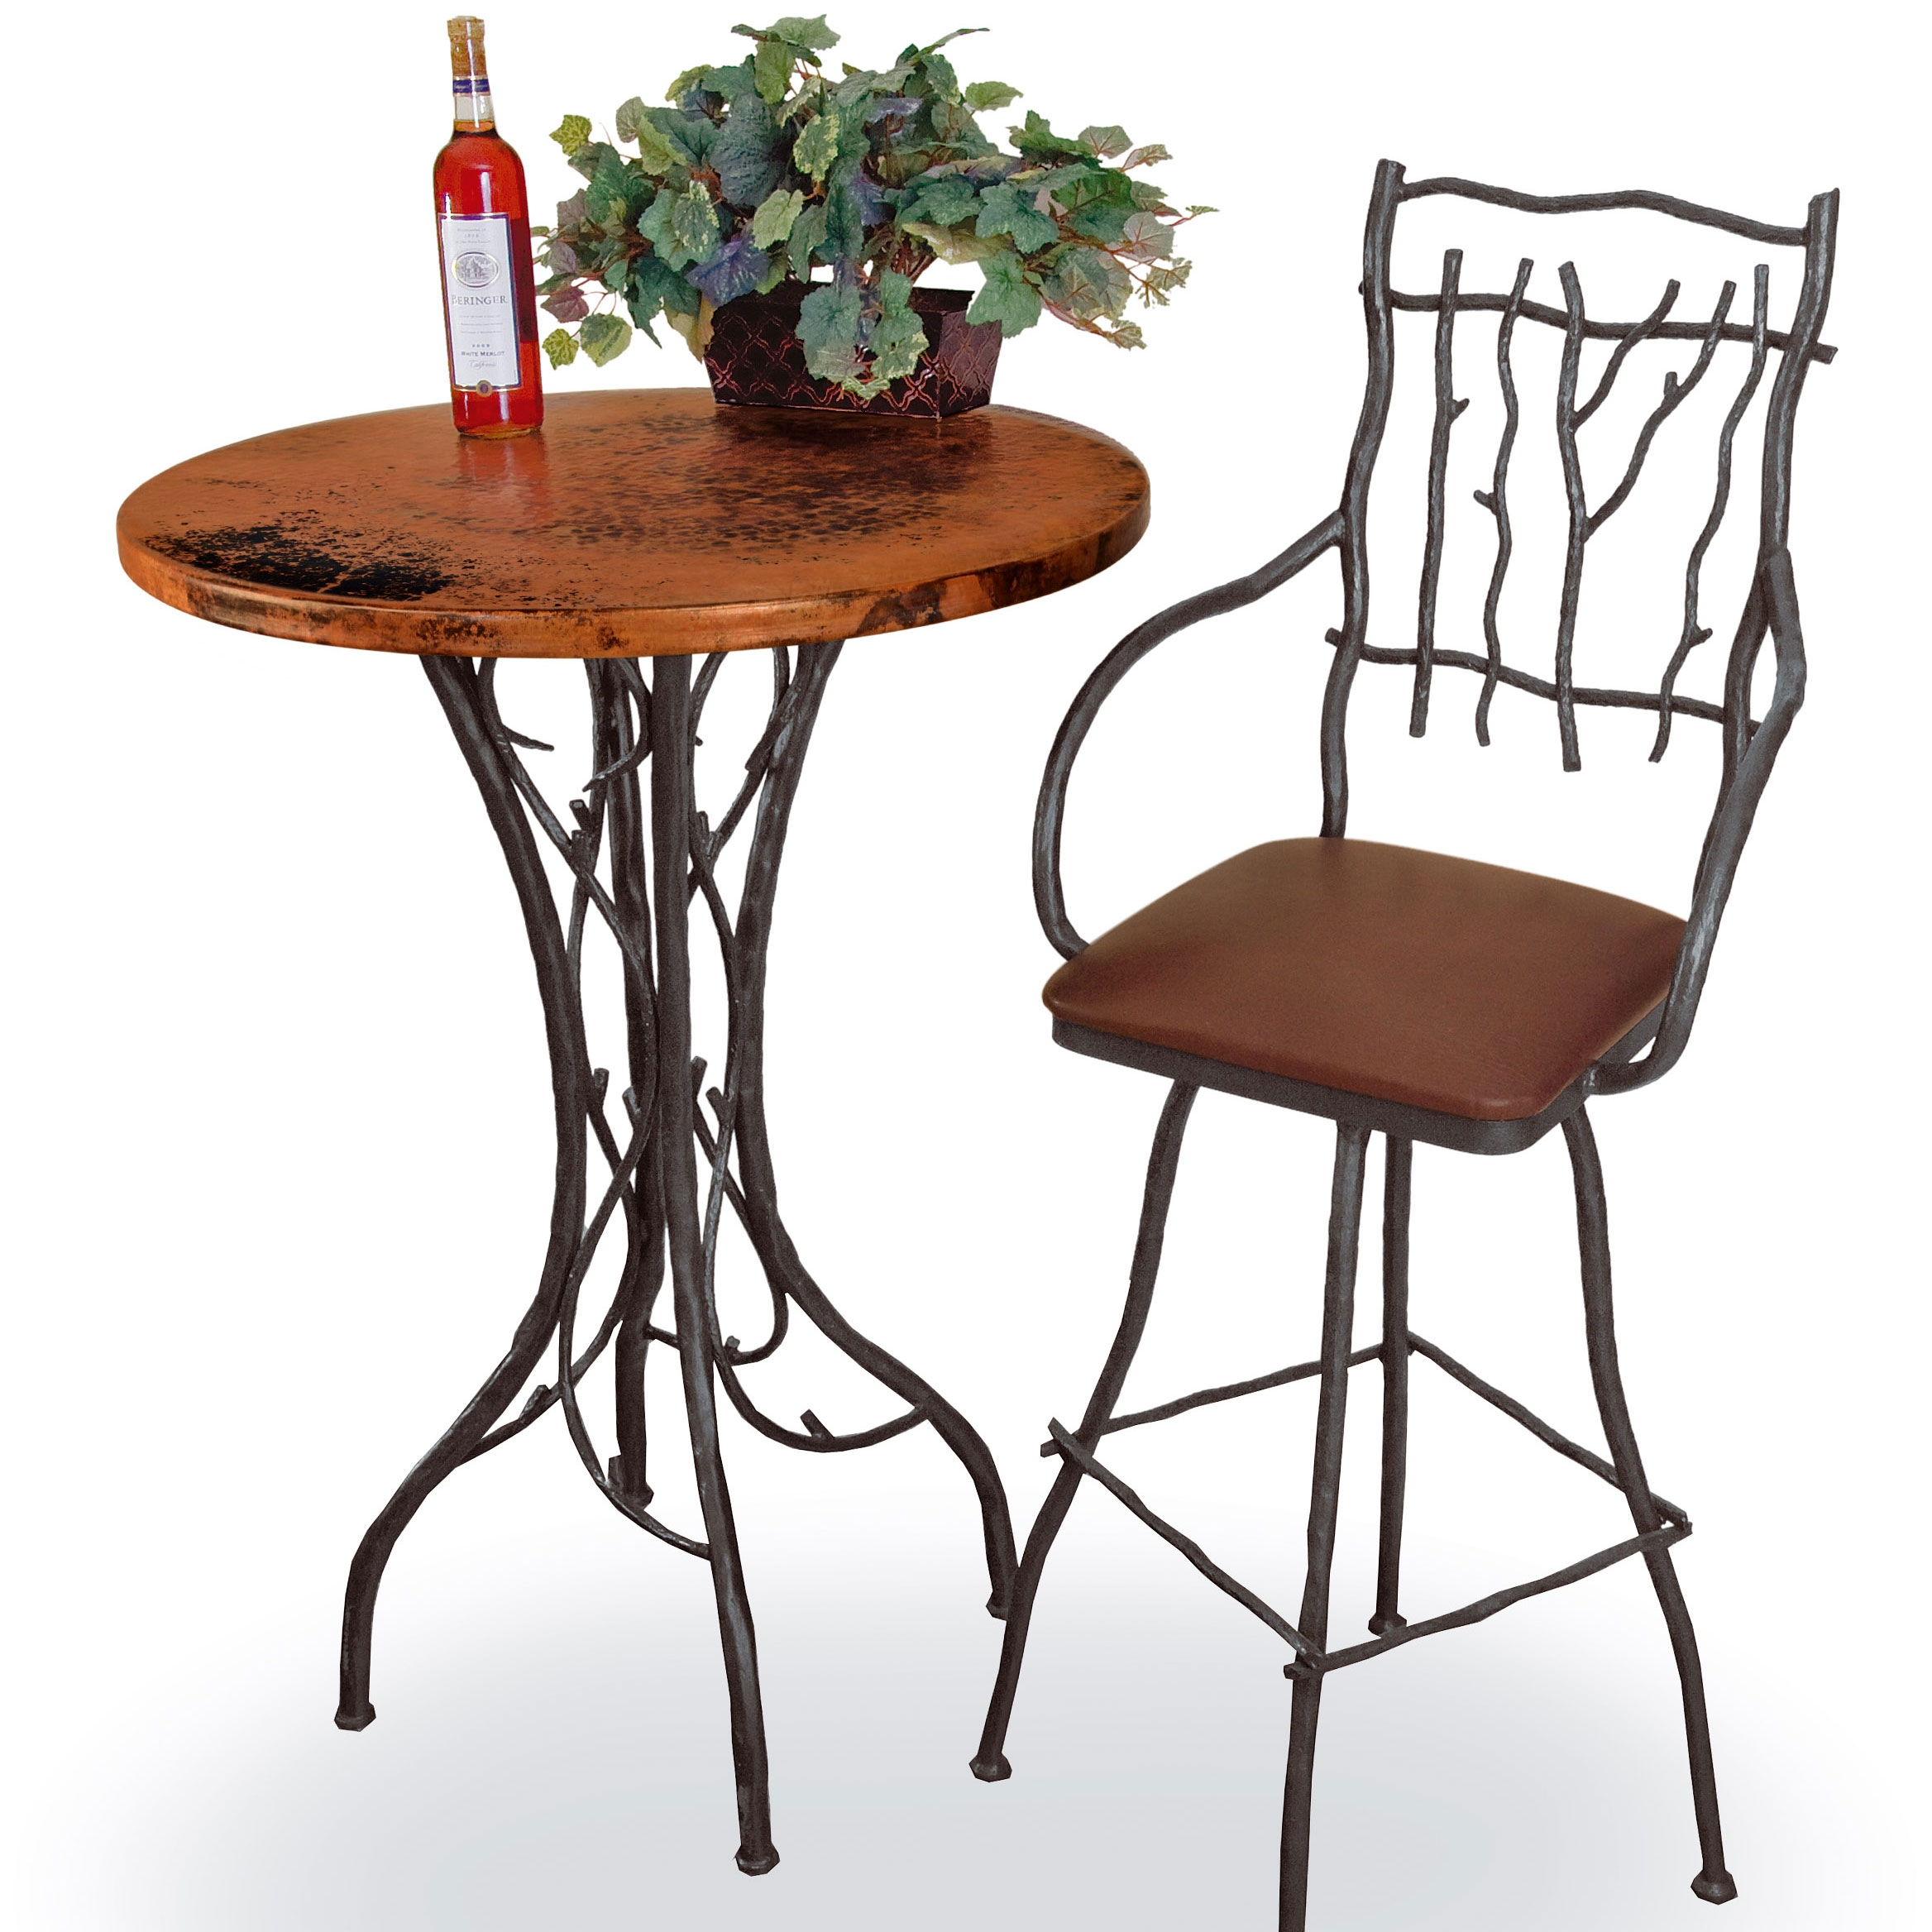 Rustic South Fork Counter Height Table | 30in Round Top